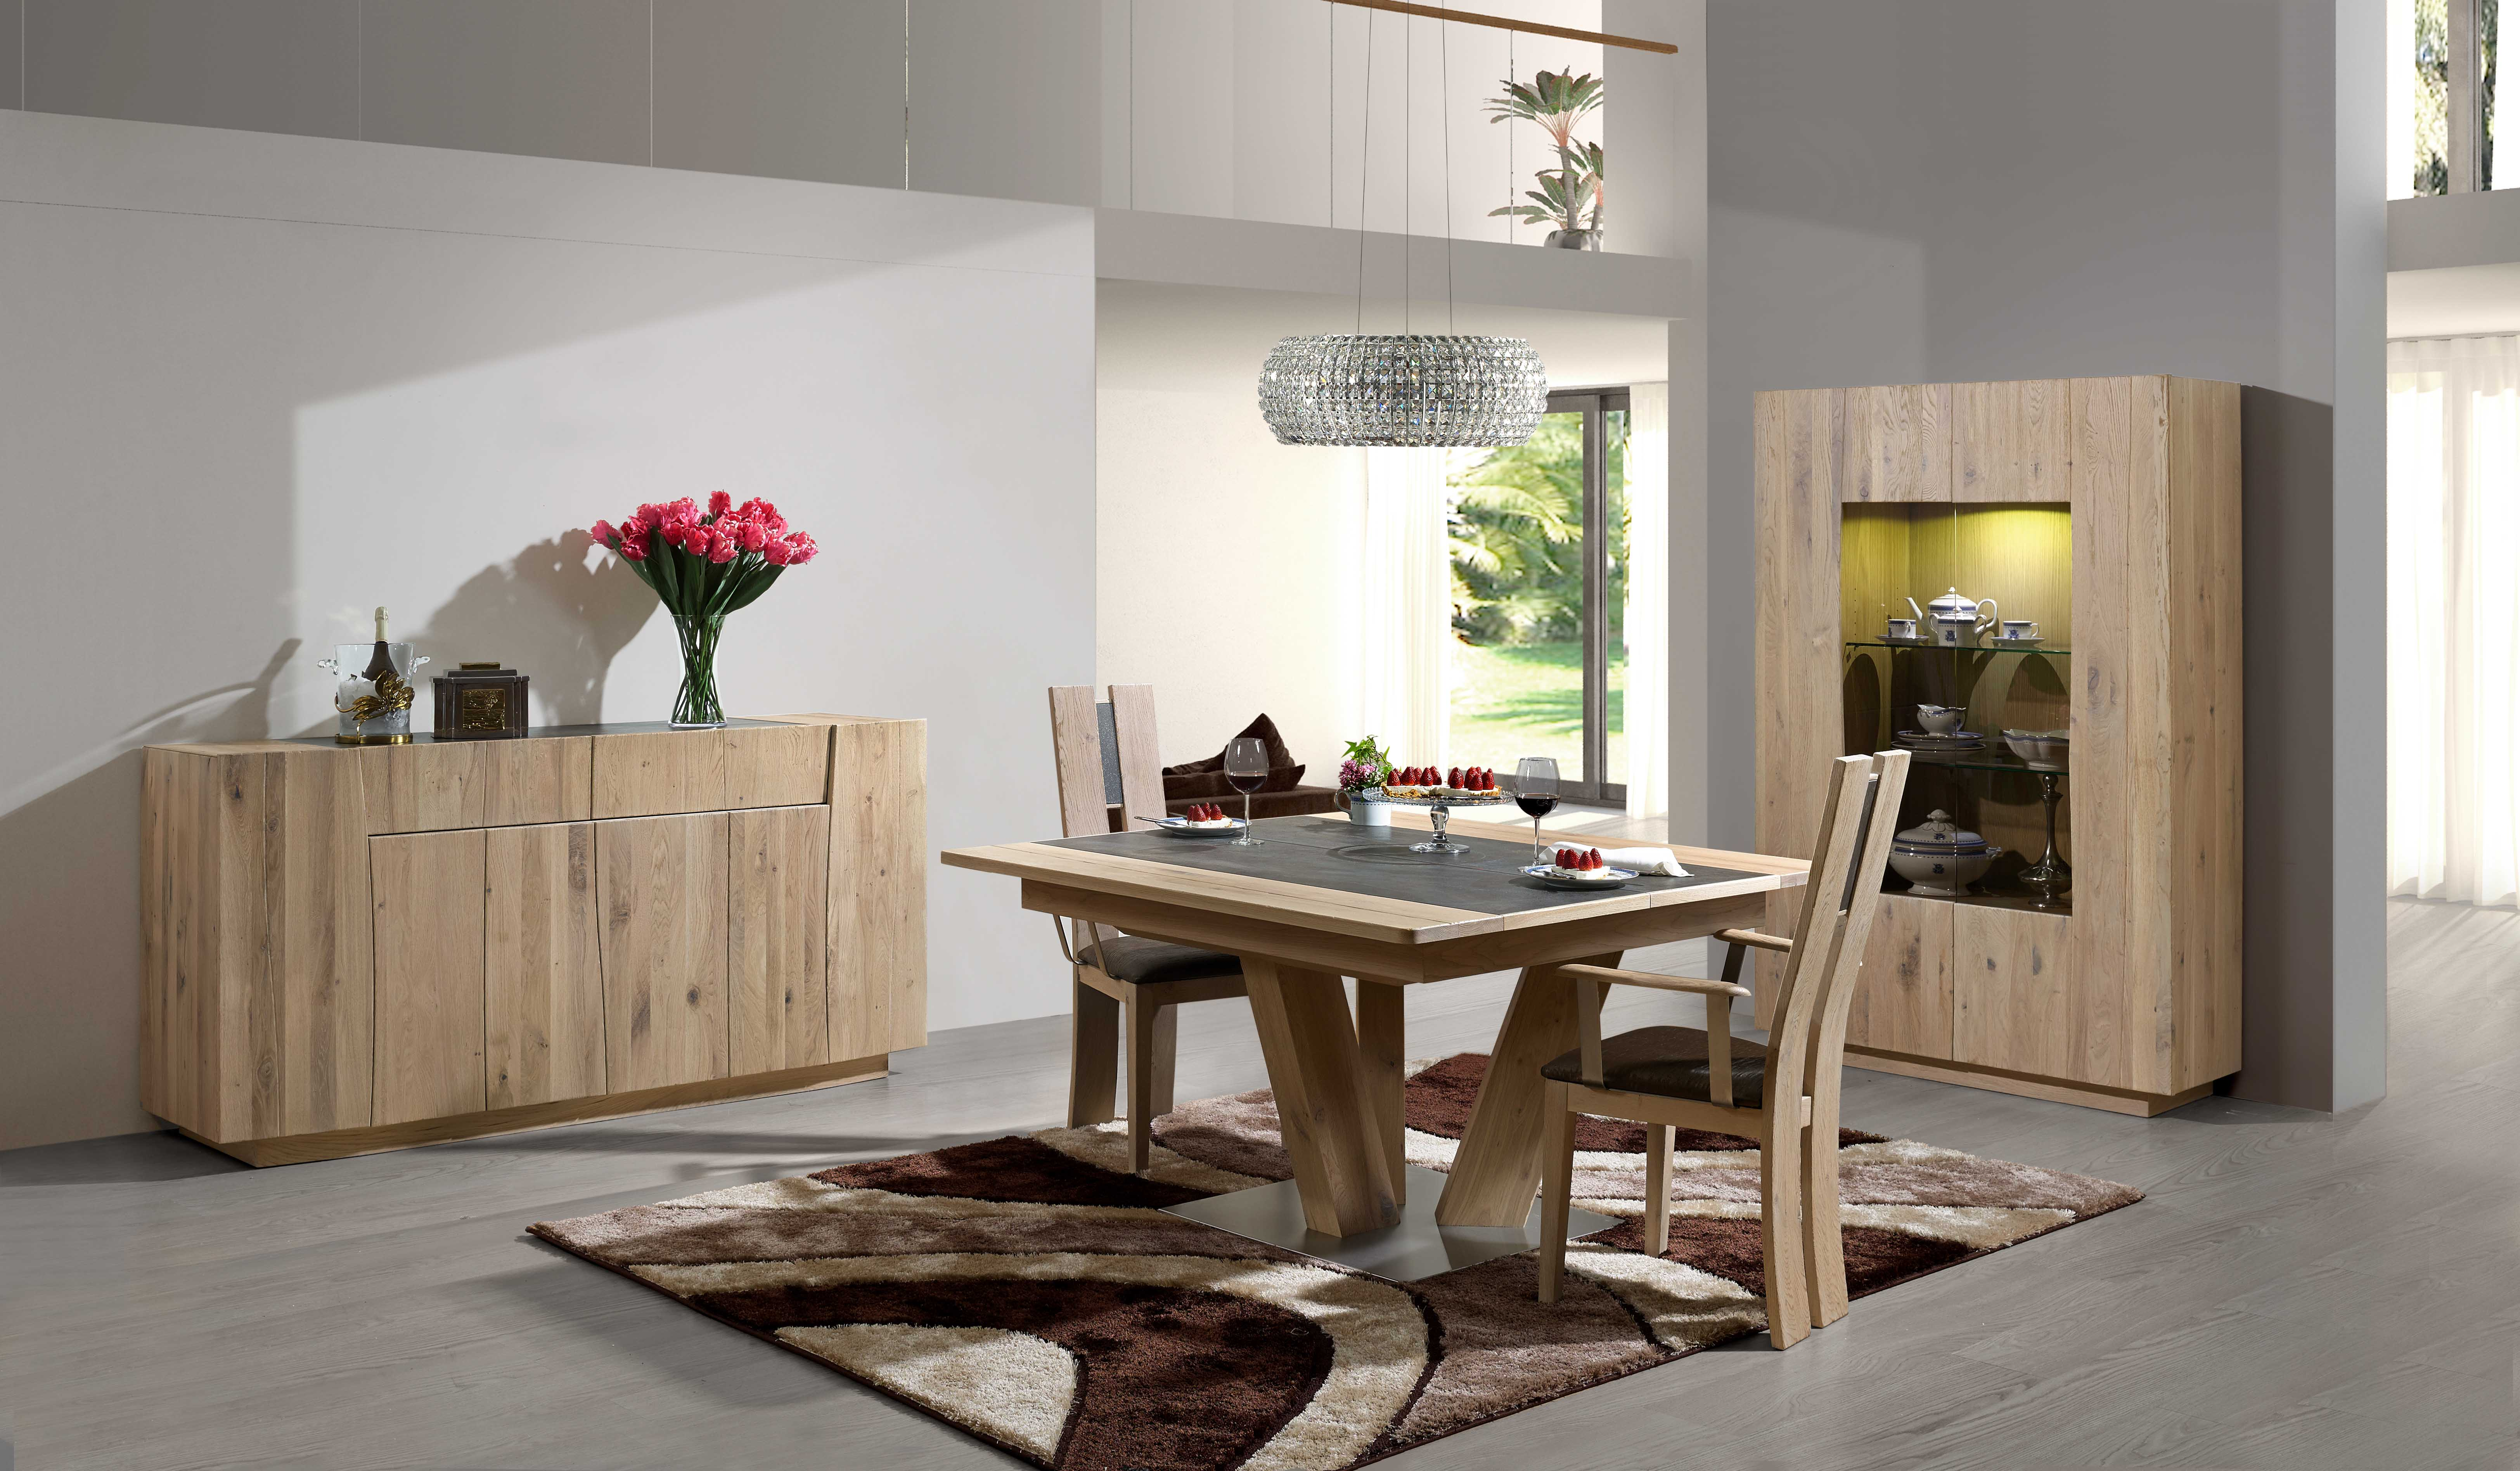 Table salle a manger chene massif occasion table salle a for Salle a manger contemporaine